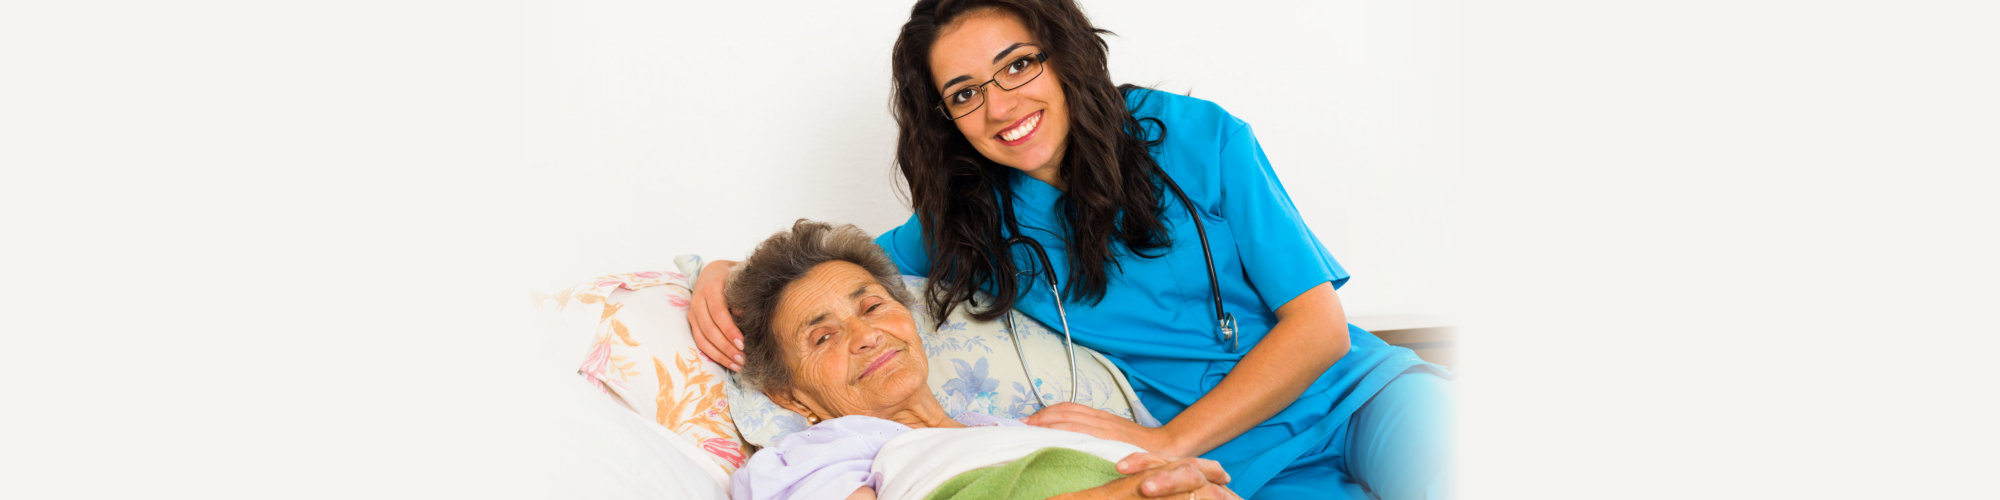 Smiling nurse caring for kind elder patient in nursing home